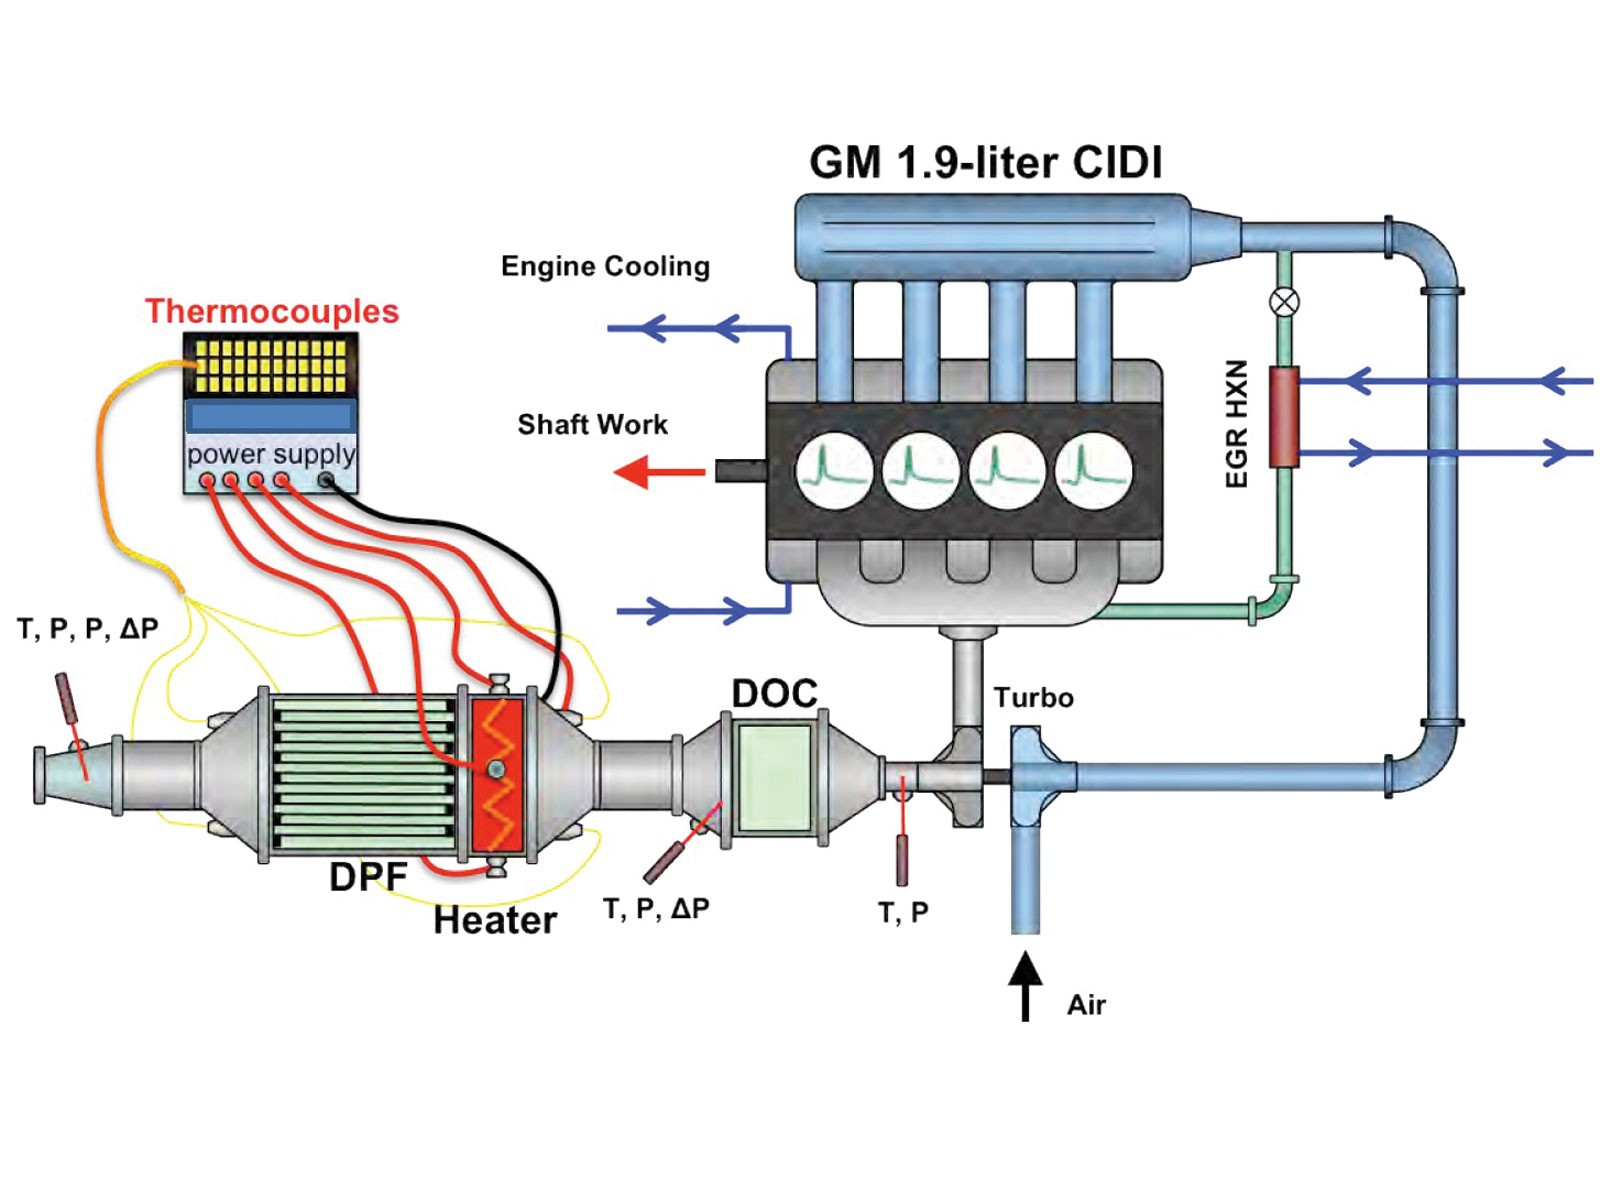 Diesel Engine Diagrams Pictures Electric Generator Diagram Eee Electronics Of Diesel Engine Diagrams Pictures